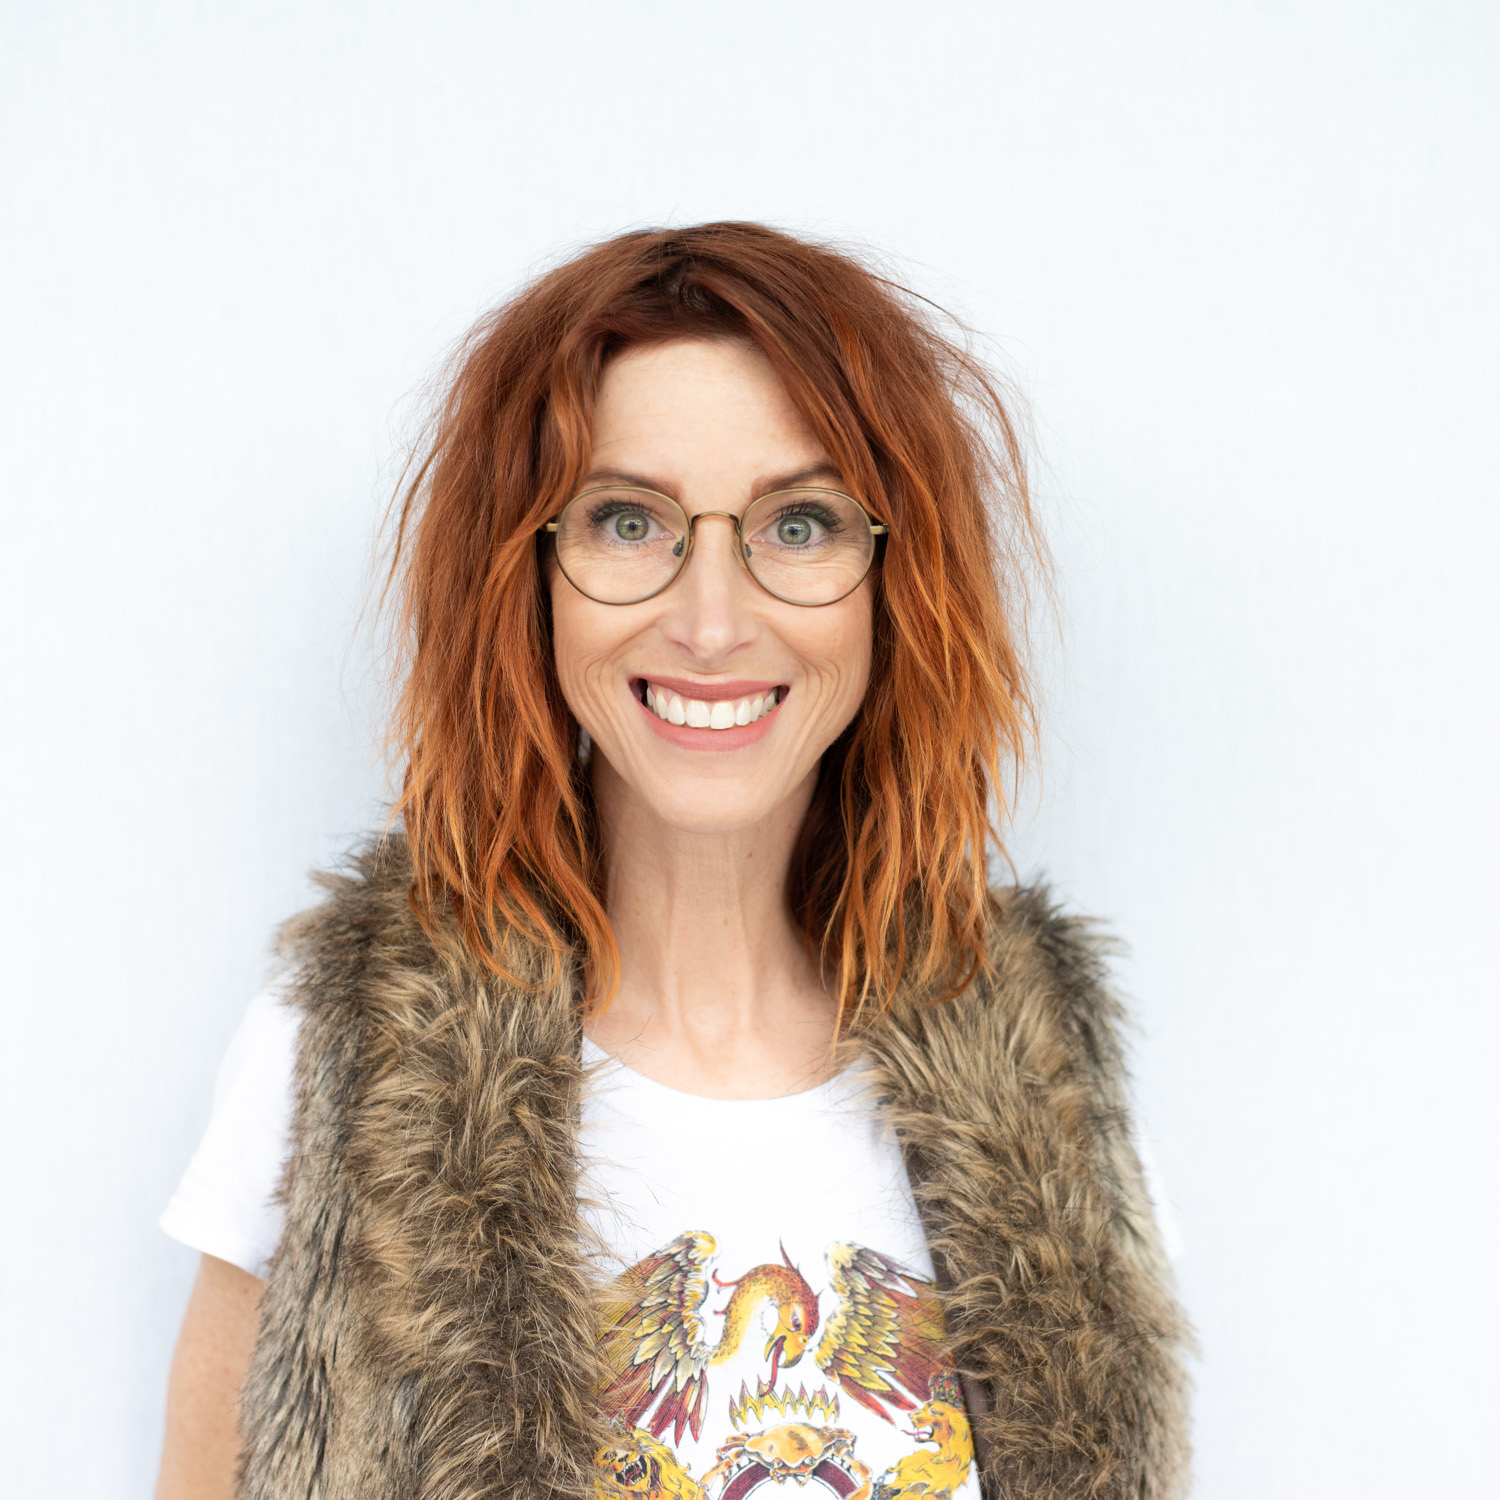 "ANGIE CHEATHAM - STYLIST - A Goonie at heart, Angie has been in the hair industry for close to 30 years. In 2013, she decided to become a cut specialist, which then evolved into her adoption of dry cutting, which is a softer, more organic approach to cutting hair. She enjoys giving each haircut the best possible ""version"" of itself, one that compliments both the hair and the wearer. Bringing out the unique magic in each person she sees.....that's a good day! Angie has an impressive education in cutting, with dry-cutting workshops under Jon Reyman, cut workshops with Gerard Scarpaci, Susan Ford, and Joel Torres, and further cutting education under Buddy Porter."